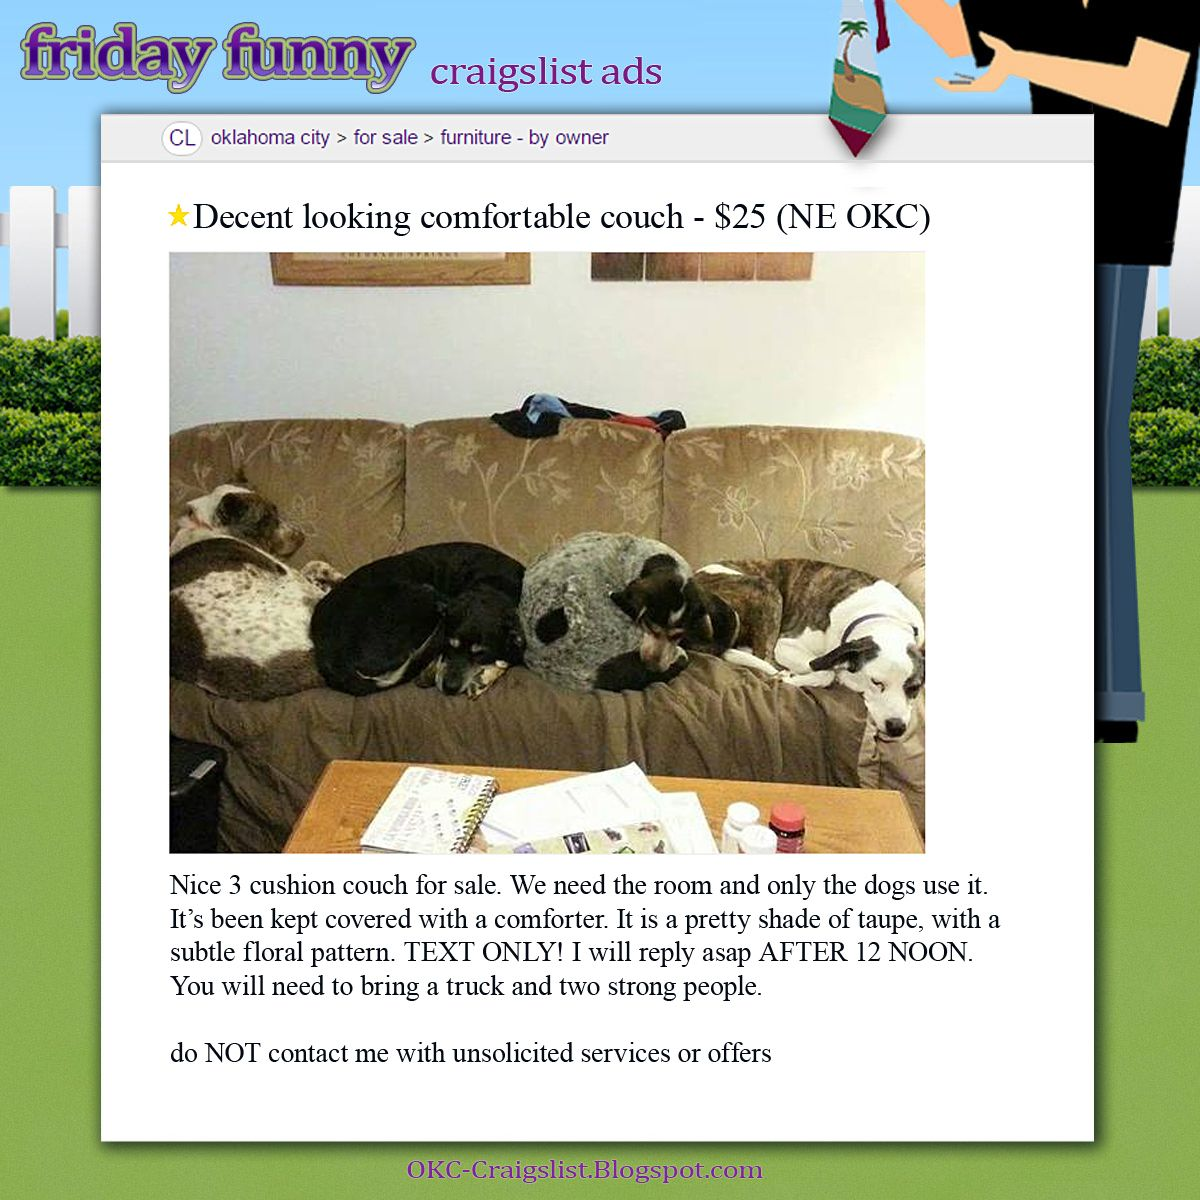 Funny Craigslist Ads Couch Has Gone To The Dogs Funny Craigslist Ads Dog Couch Craigslist Funny